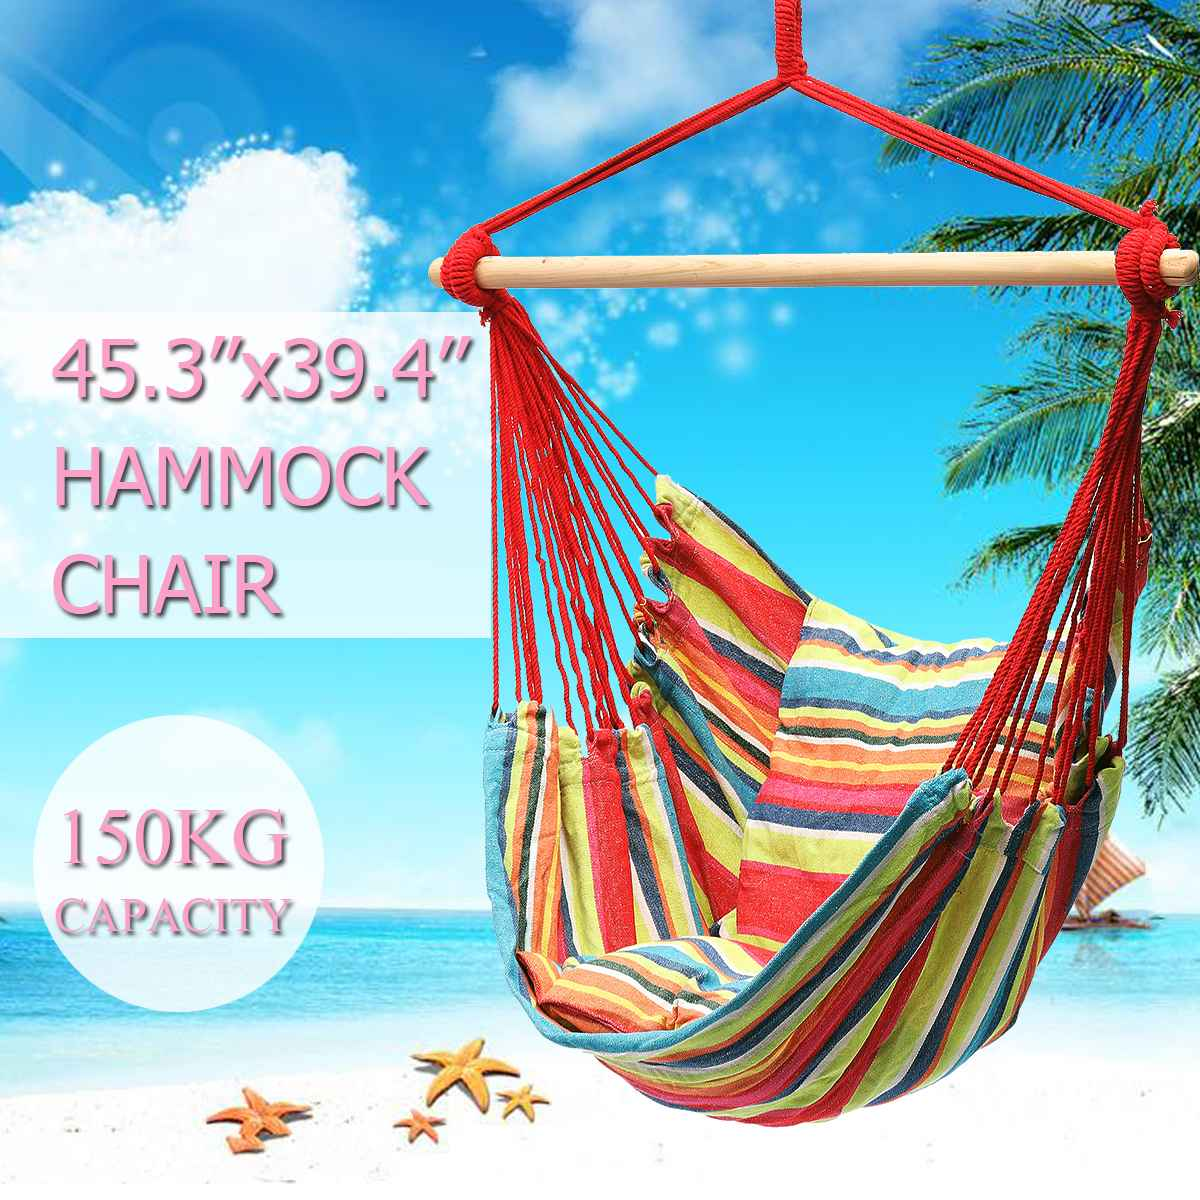 Safety Hanging Hammocks Chair Indoor Outdoor Furniture Swinging Chair Canvas Dormitory Garden Swing + 2 Pillows Hammock CampingSafety Hanging Hammocks Chair Indoor Outdoor Furniture Swinging Chair Canvas Dormitory Garden Swing + 2 Pillows Hammock Camping